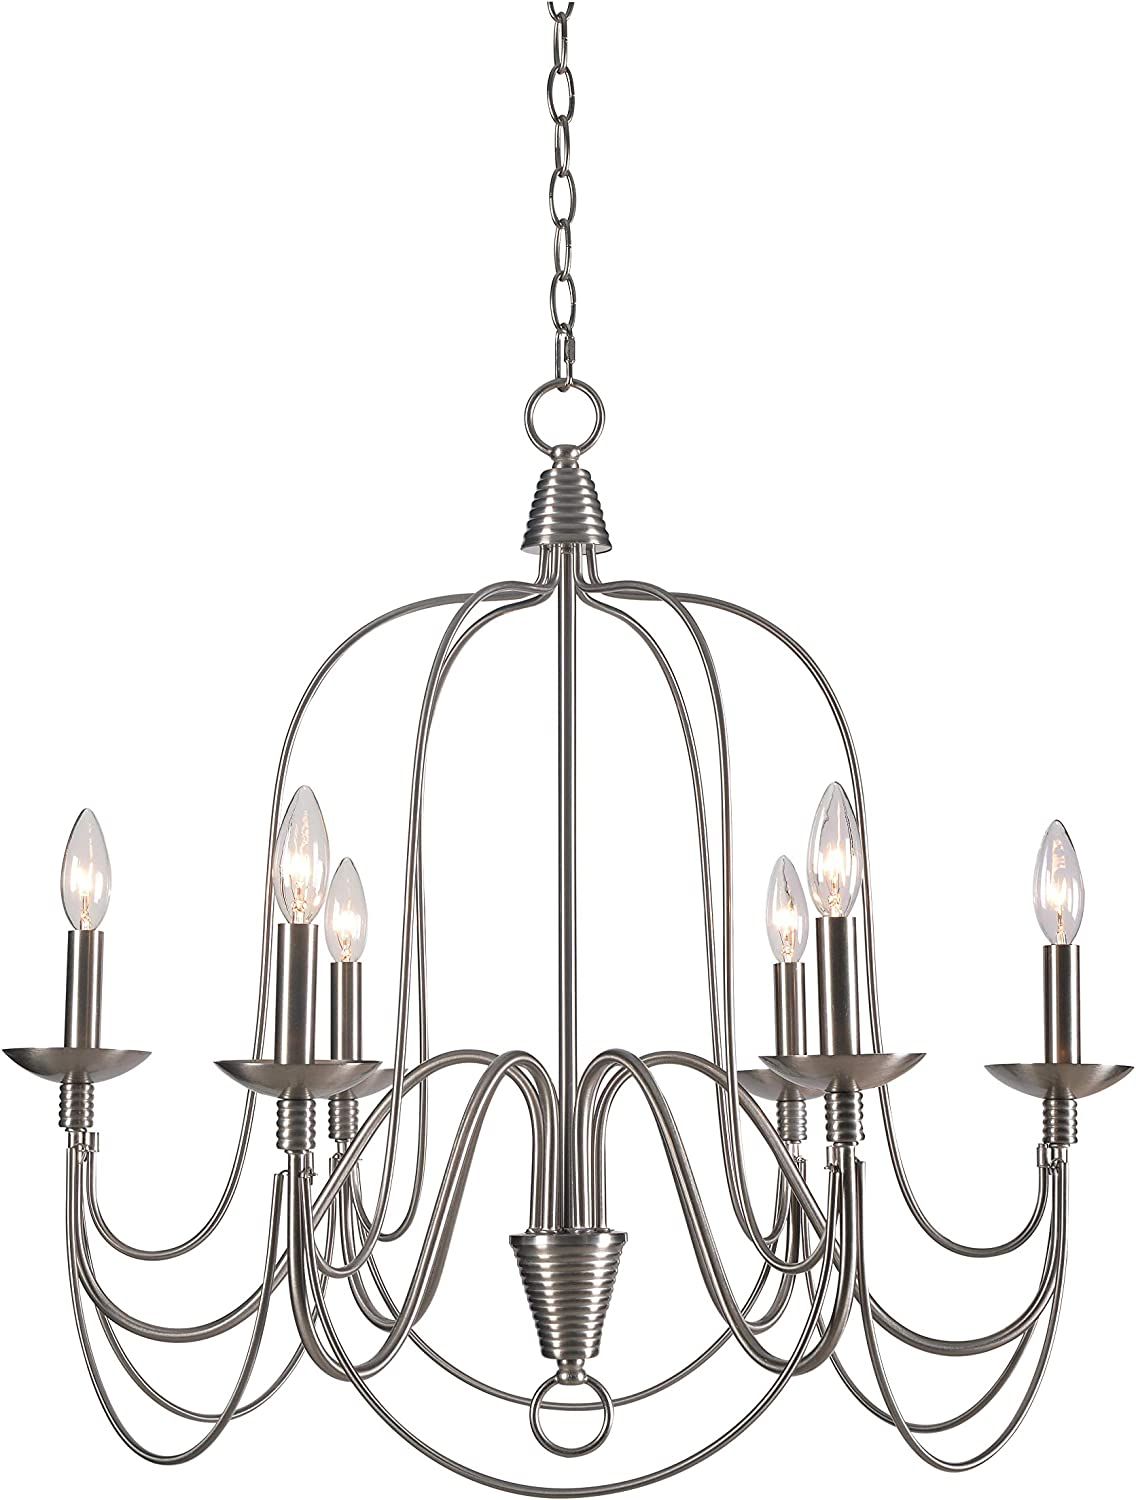 Kenroy Home Classic 6 Light Chandelier ,26.5 Inch Height, 26.5 Inch Diameter with Brushed Steel Finish